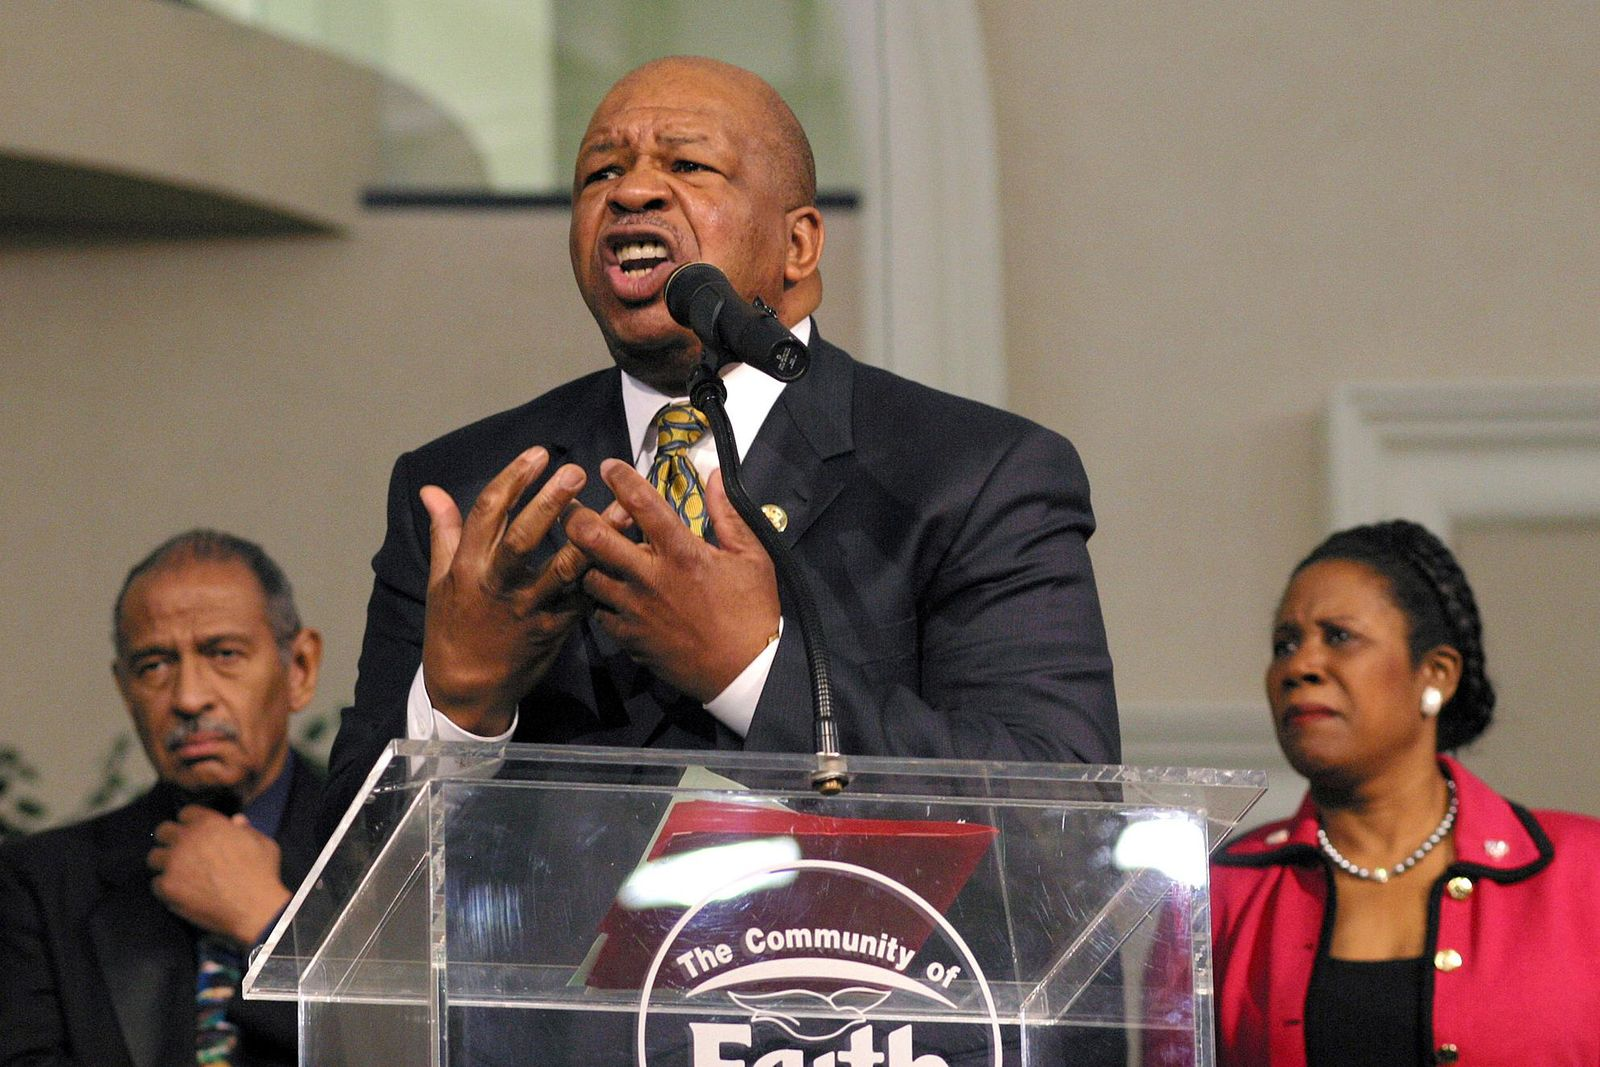 "FILE - In this Sunday, March 30, 2003 file photo, Congressional Black Caucus Chairman Rep. Elijah Cummings, D-Md., speaks about affirmative action, accompanied by Rep. John Conyers, D-Mich., left, and Rep. Sheila Jackson Lee, D-Texas, right, during a church service at Community of Faith Church in Houston. ""Although Congressman Cummings was not a preacher in the sense of being ordained and licensed, him being a preacher's kid made him pretty close and made him very comfortable with ministers and clergy _ to a point where in many respects many of us in the clergy community, in the African-American community, almost regarded him as a preacher,"" said the Rev. Charles Williams II, senior pastor of Detroit's Historic King Solomon Missionary Baptist Church. (AP Photo/Michael Stravato)"